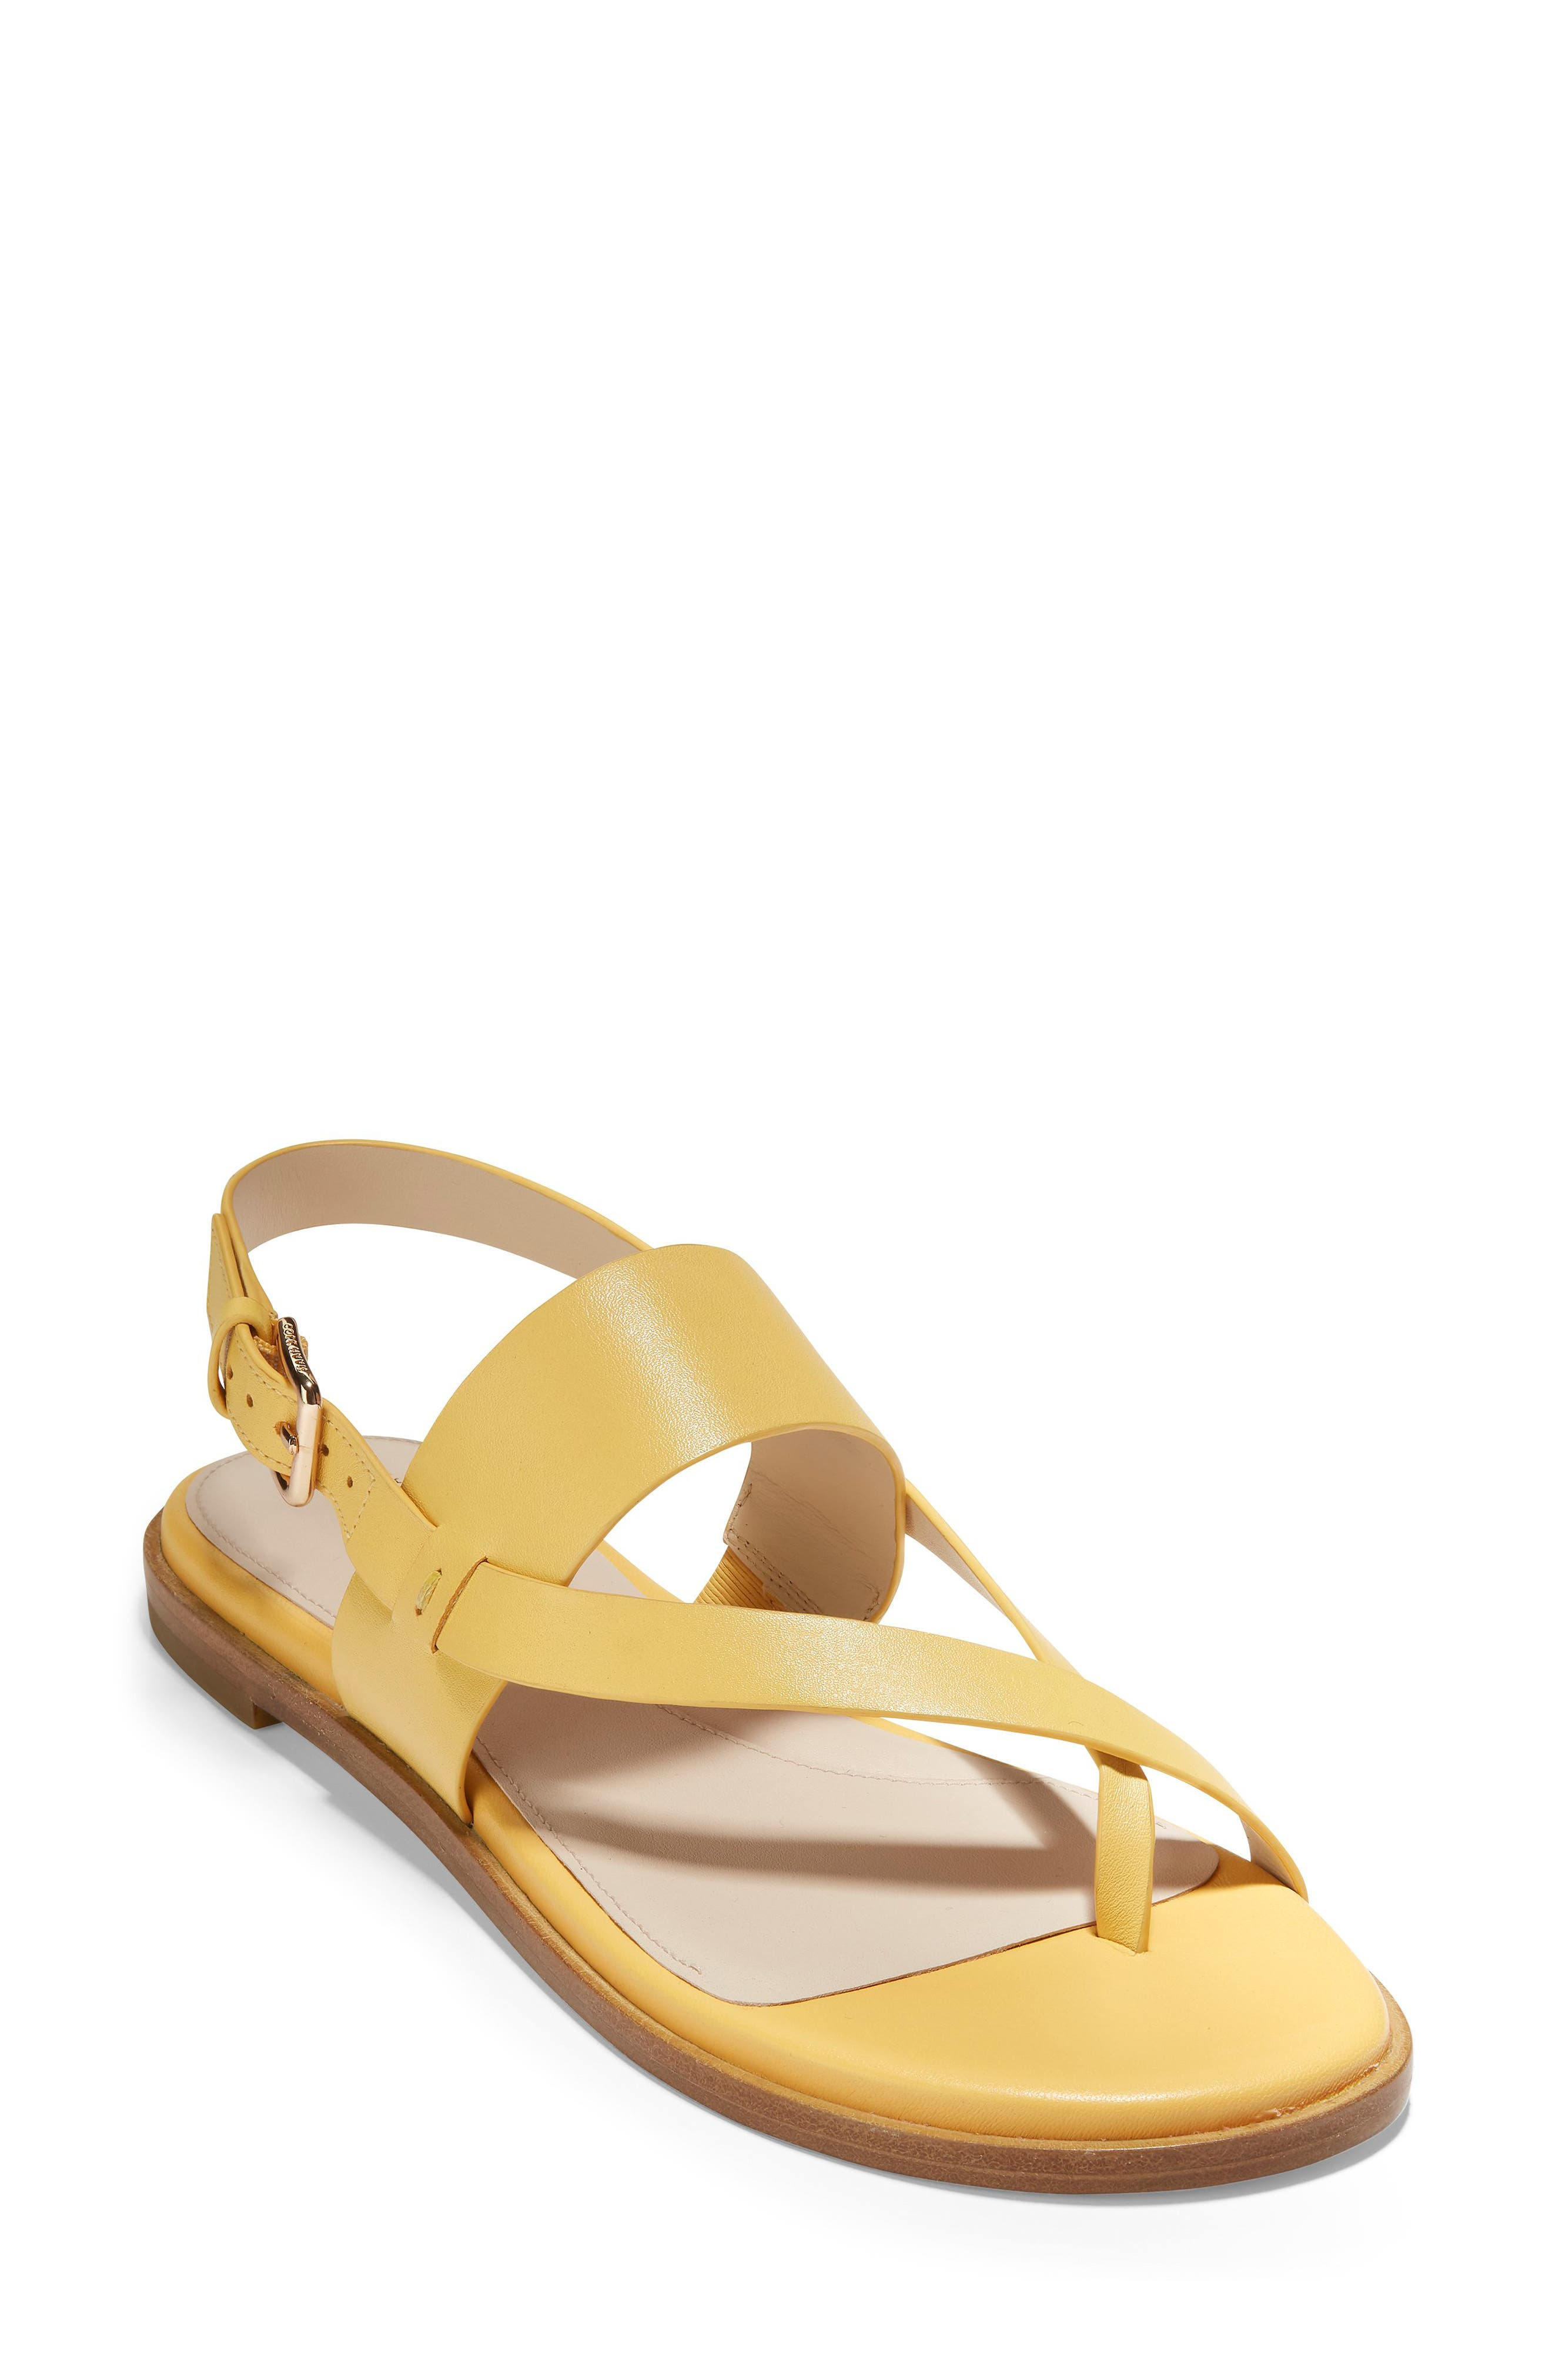 COLE HAAN Anica Sandal, Main, color, SUNSET GOLD LEATHER